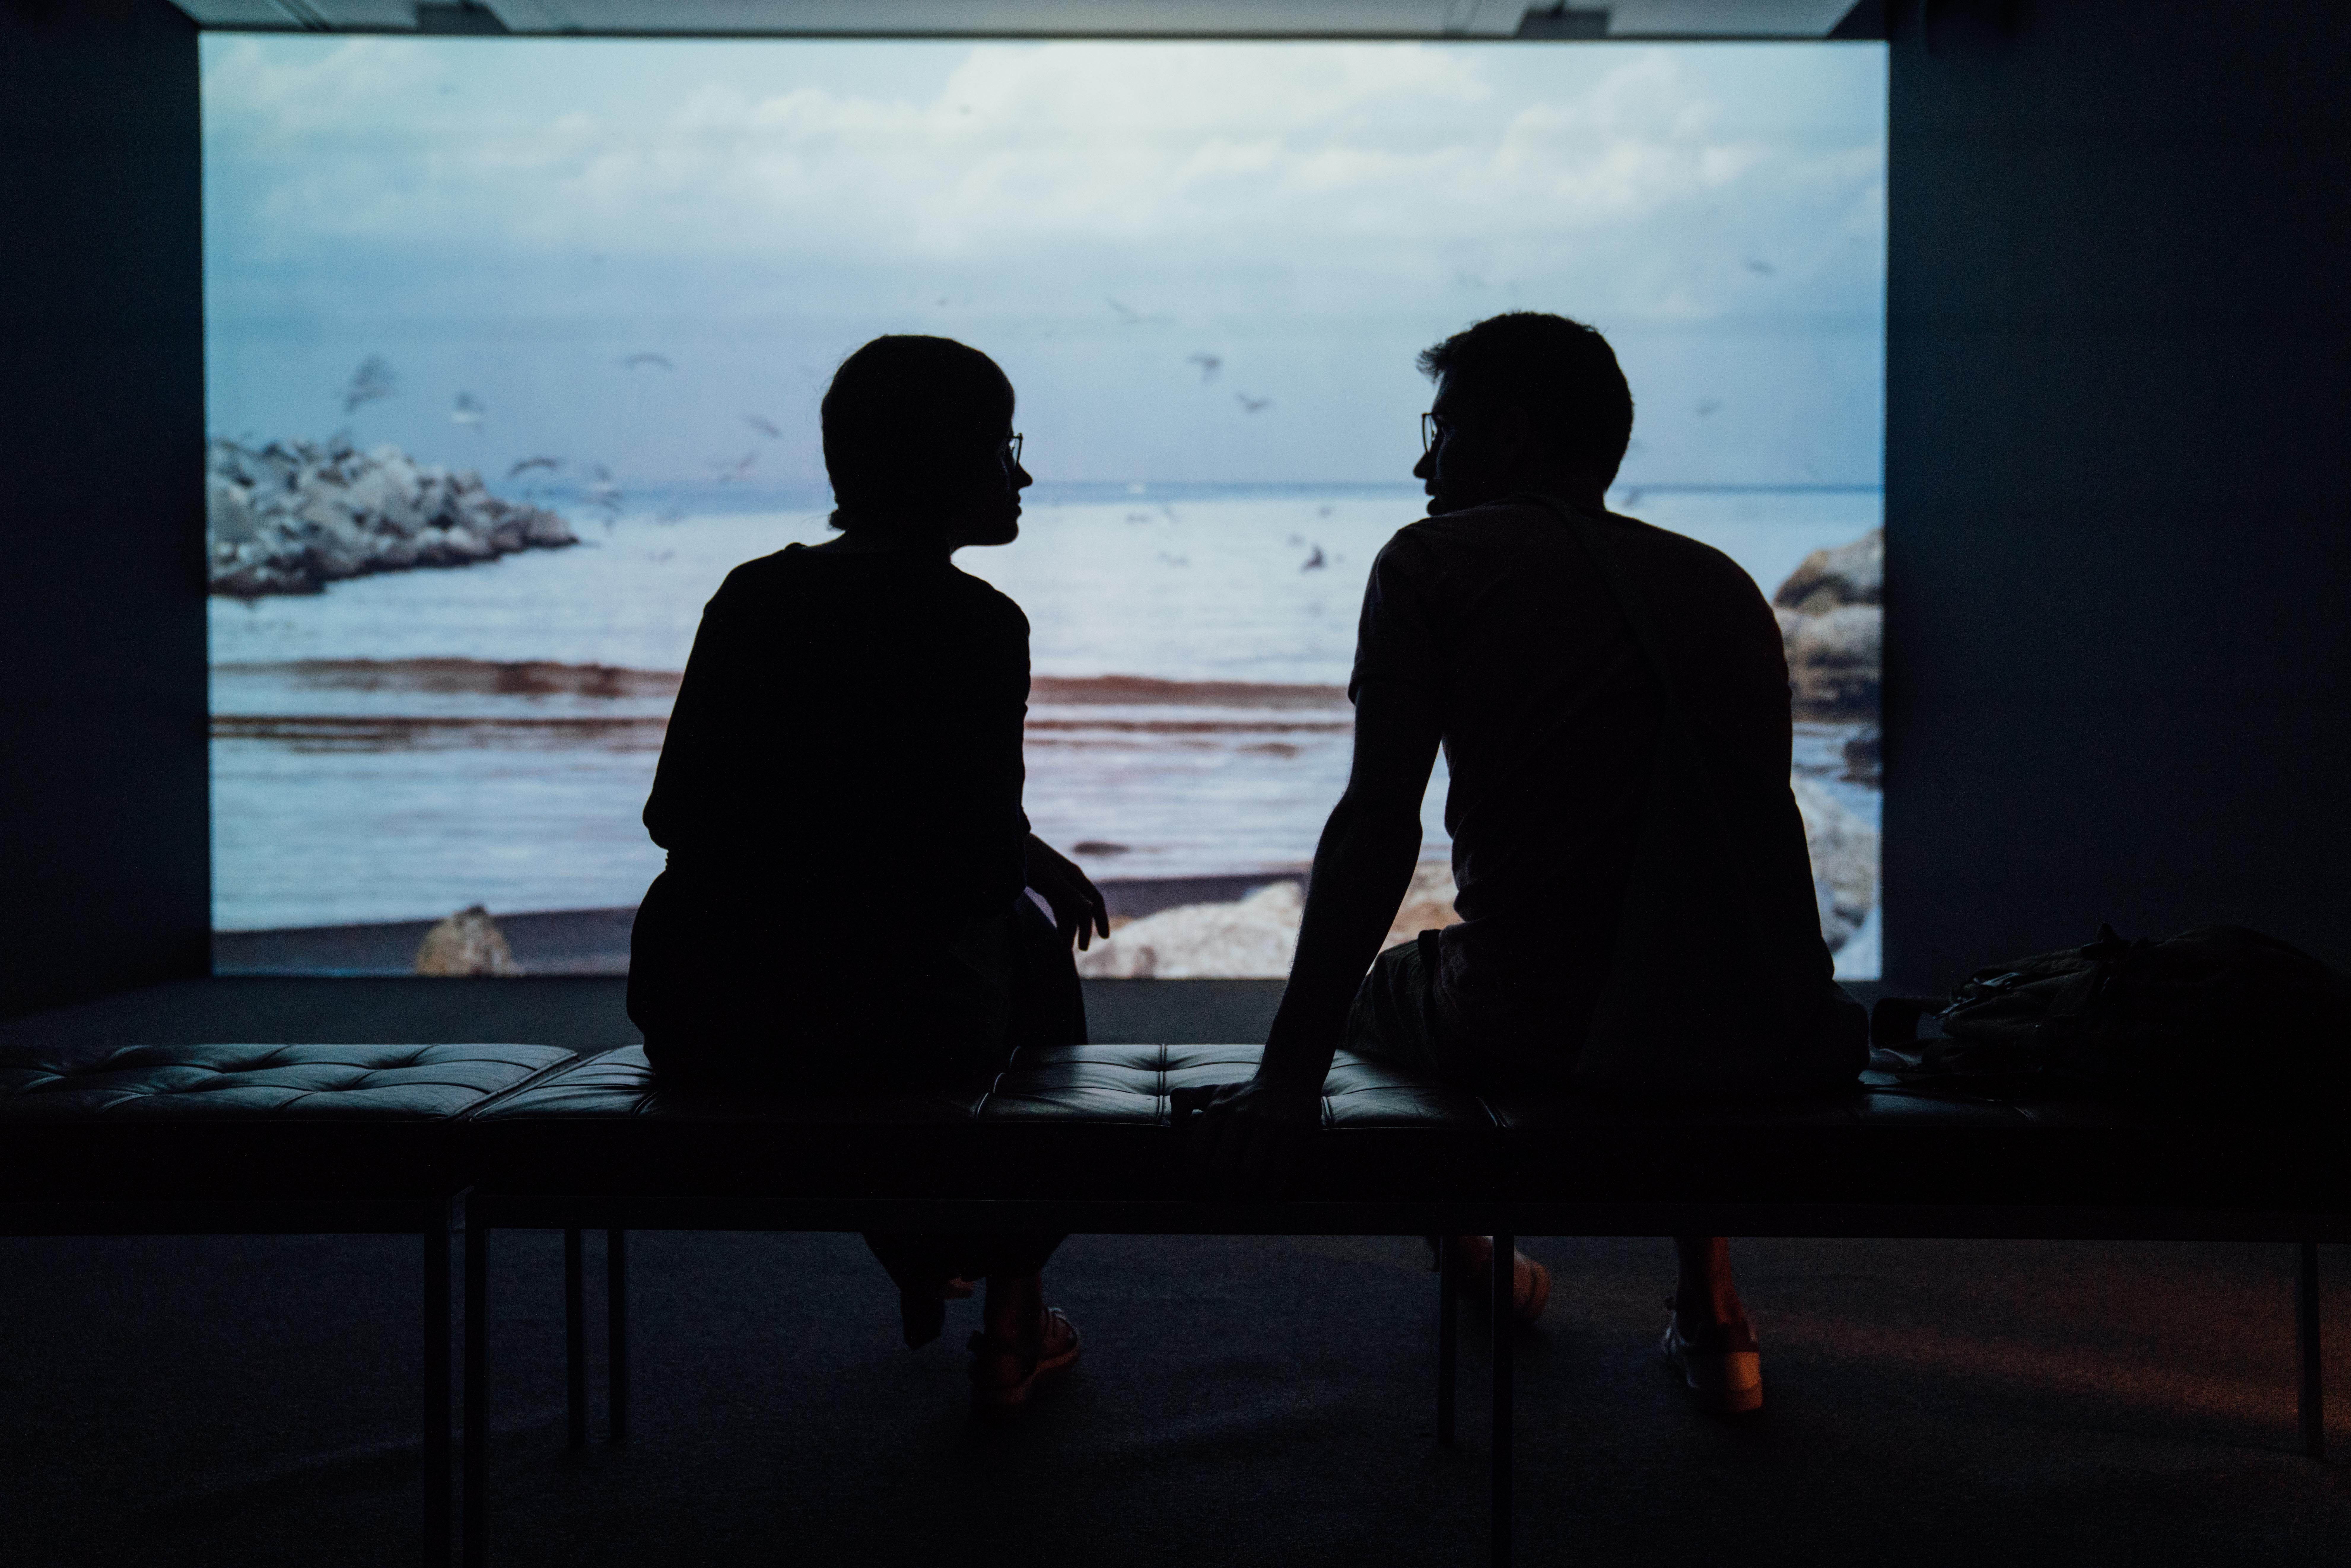 Two people talking in front of a projected video in a dark room